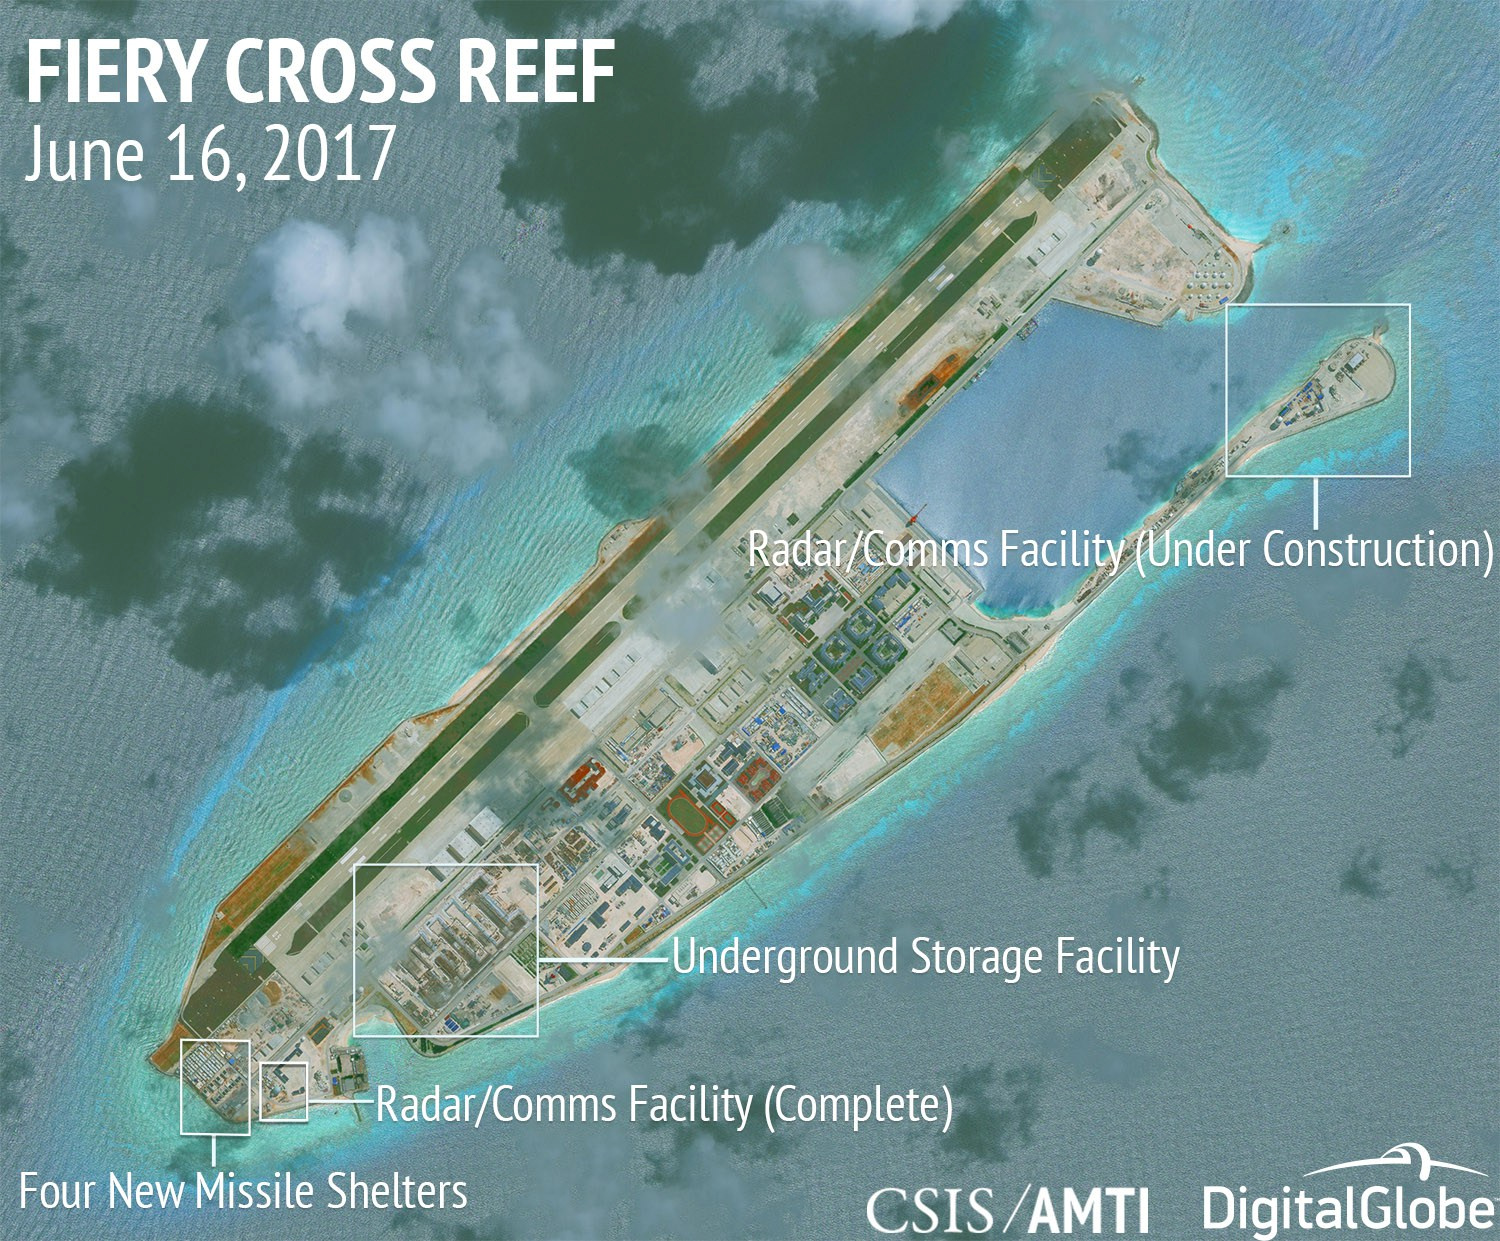 Construction is shown on Fiery Cross Reef in the Spratly Islands, the disputed South China Sea, in this June 16, 2017, satellite image released by CSIS Asia Maritime Transparency Initiative at the Center for Strategic and International Studies (CSIS)...